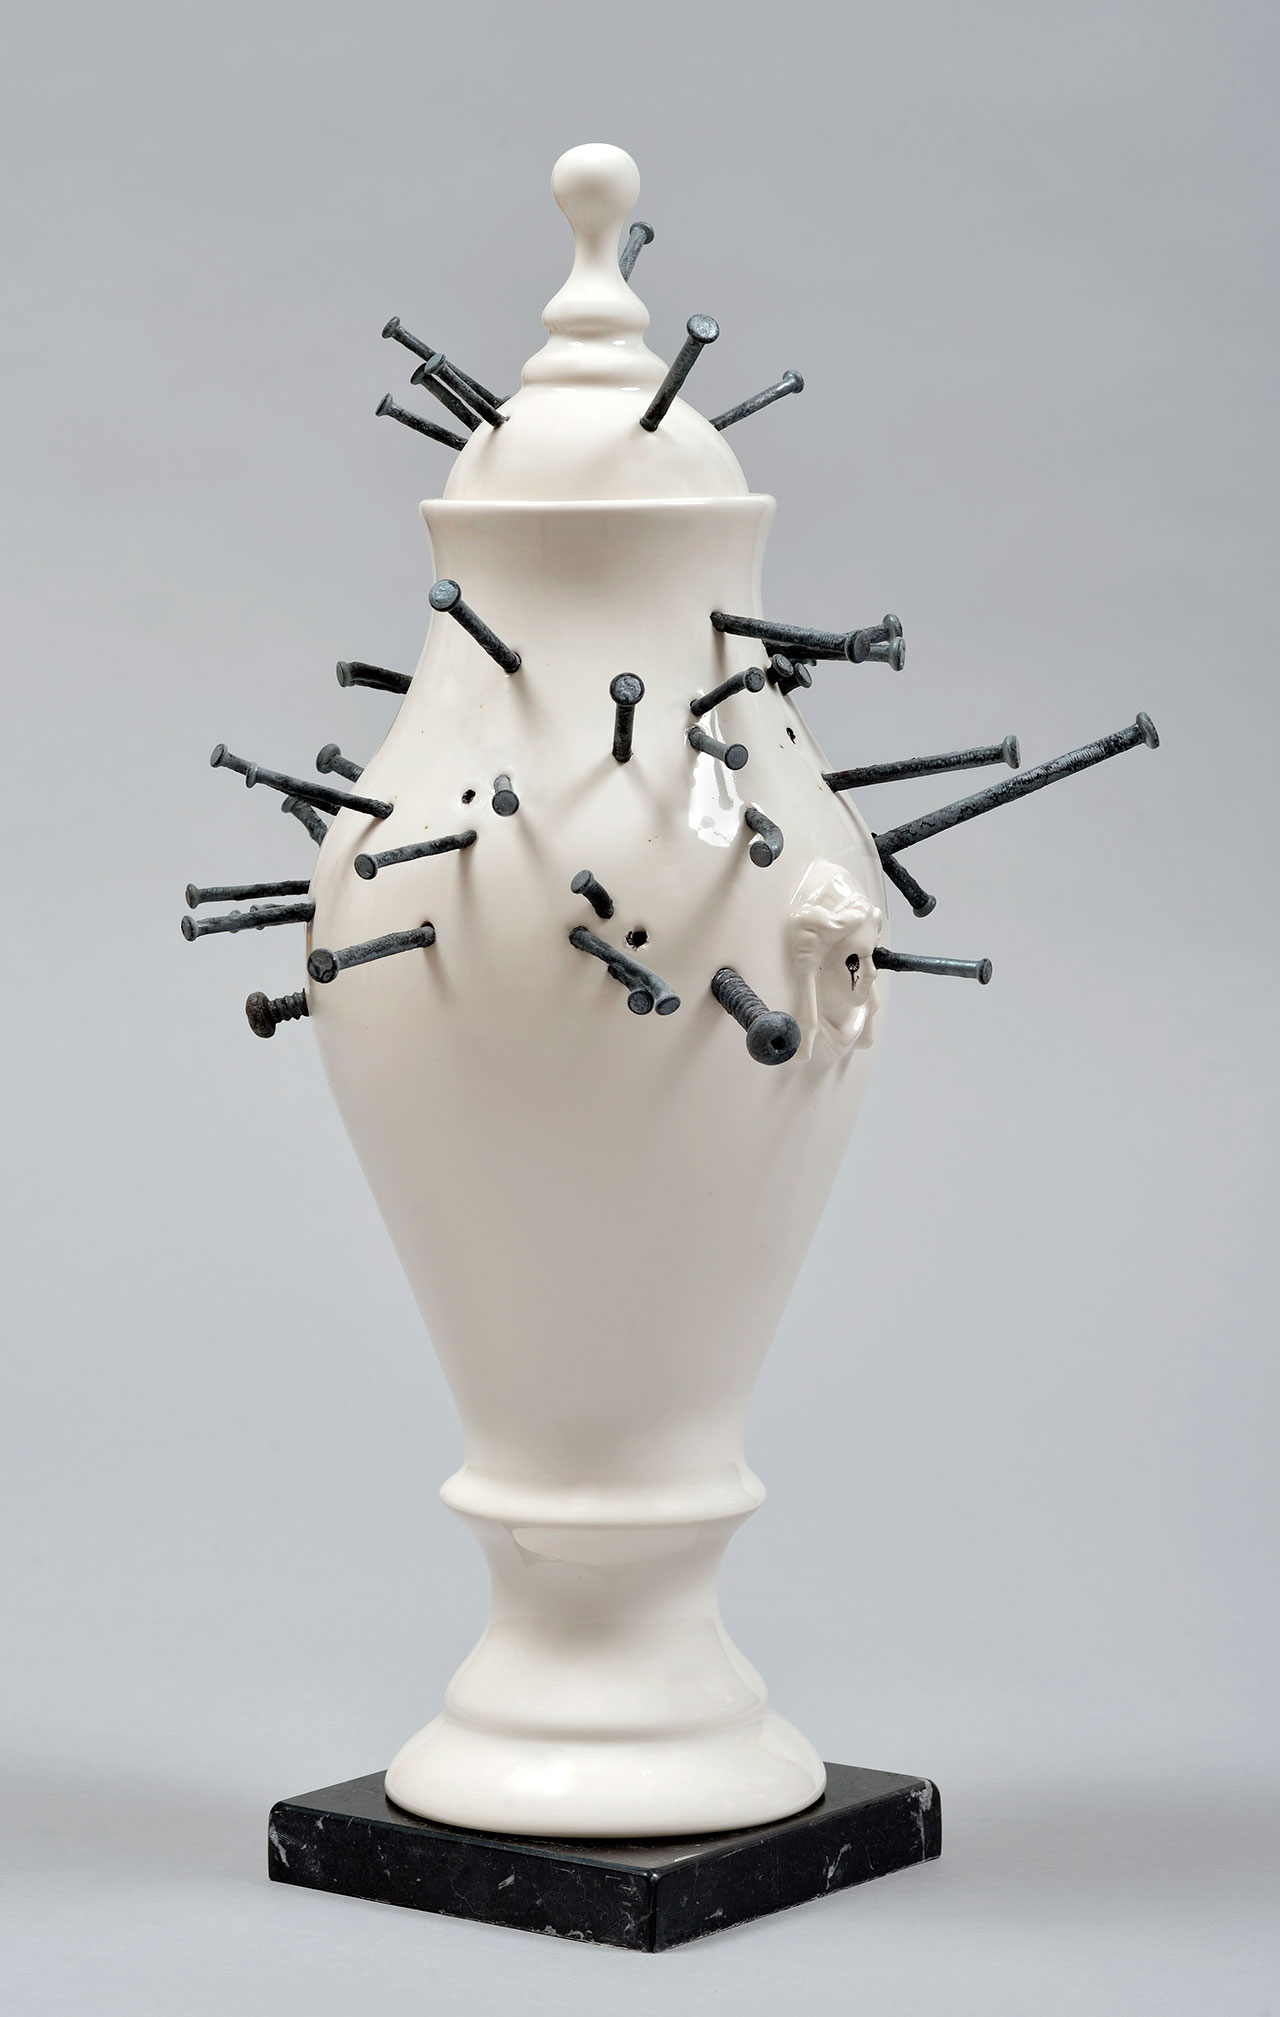 Craste Laurent, Vase Vaudou, 2014. Porcelain, glaze, nails, marble. 41.8 x 21.4 x 22.8 cm.